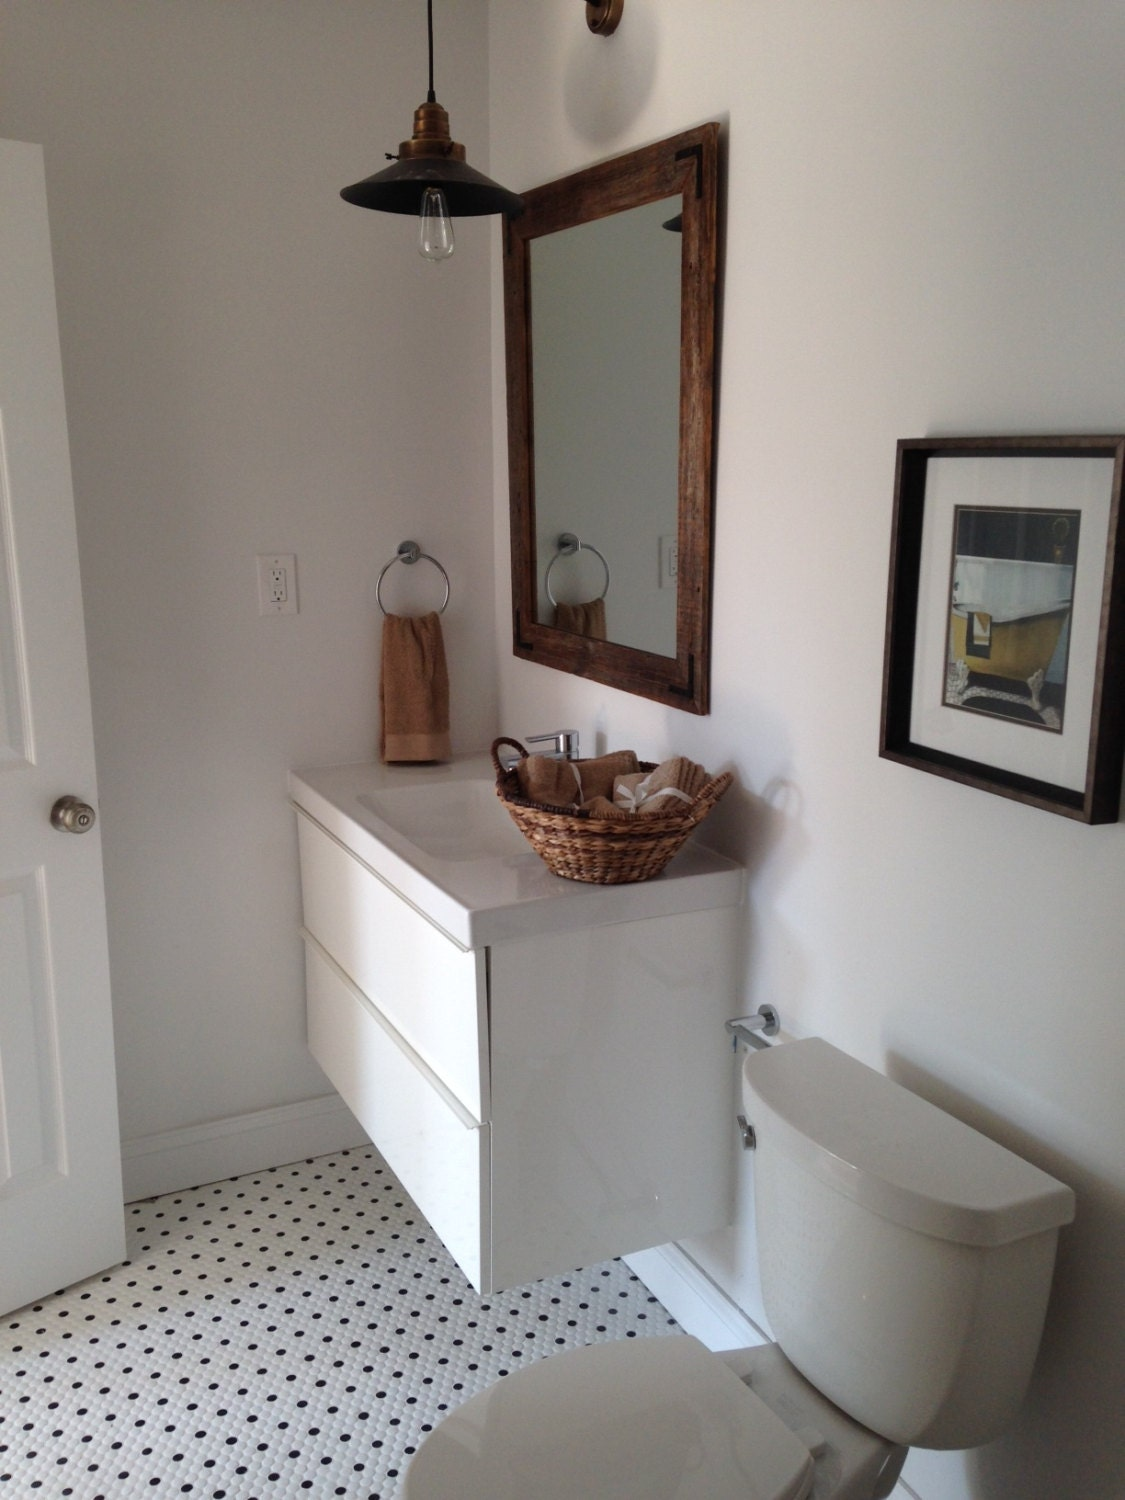 images of white cabinets in kitchen bathroom mirrors etsy with excellent styles in india 17800